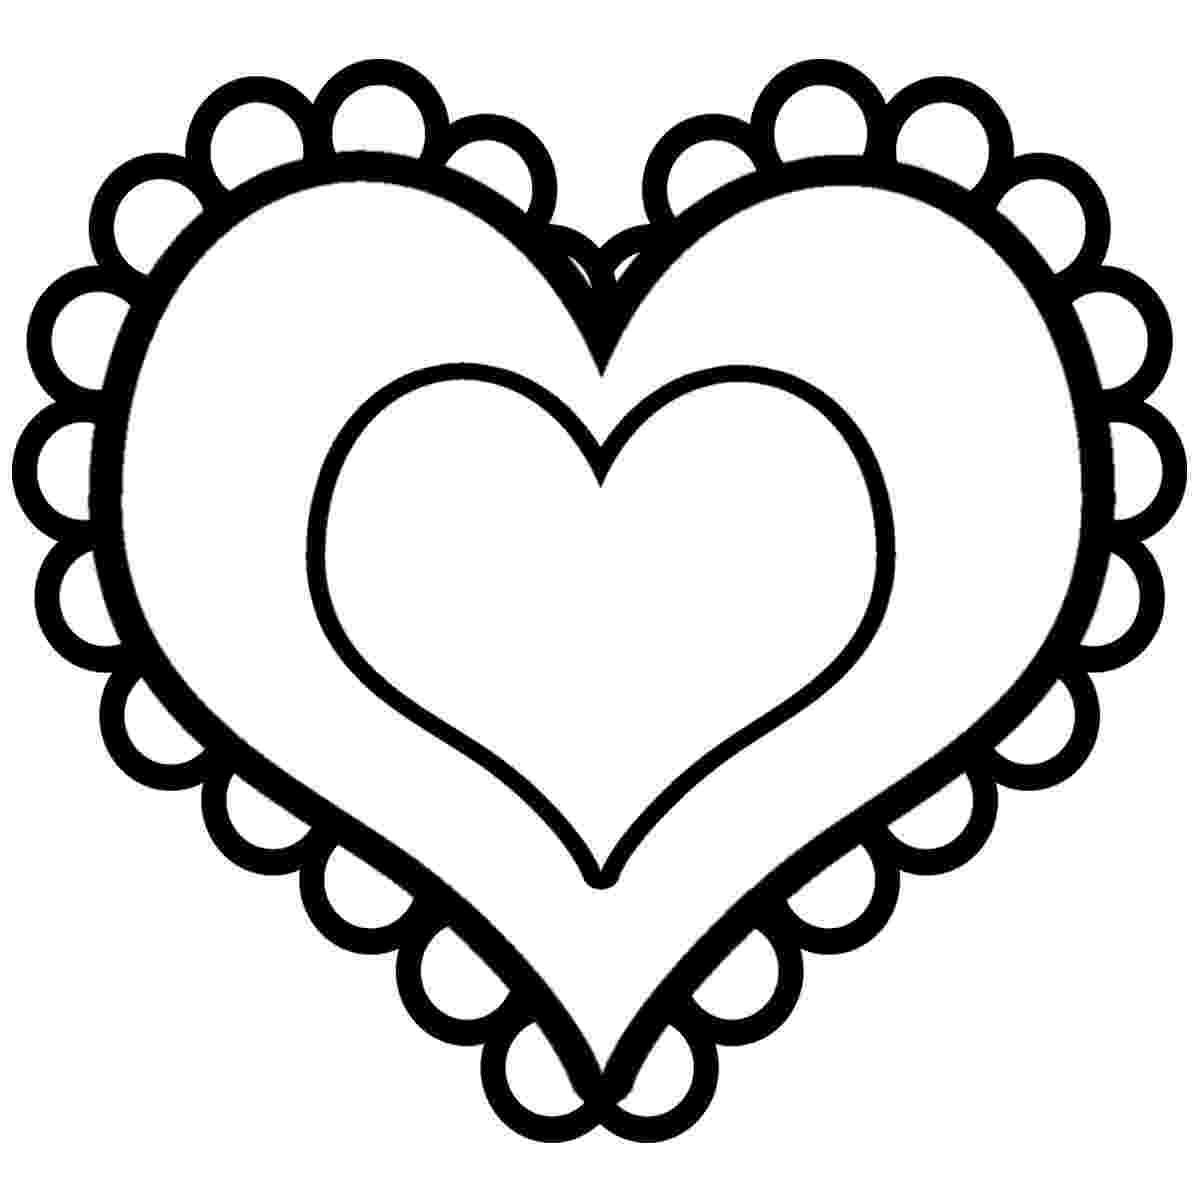 heart coloring pages 35 free printable heart coloring pages heart coloring pages